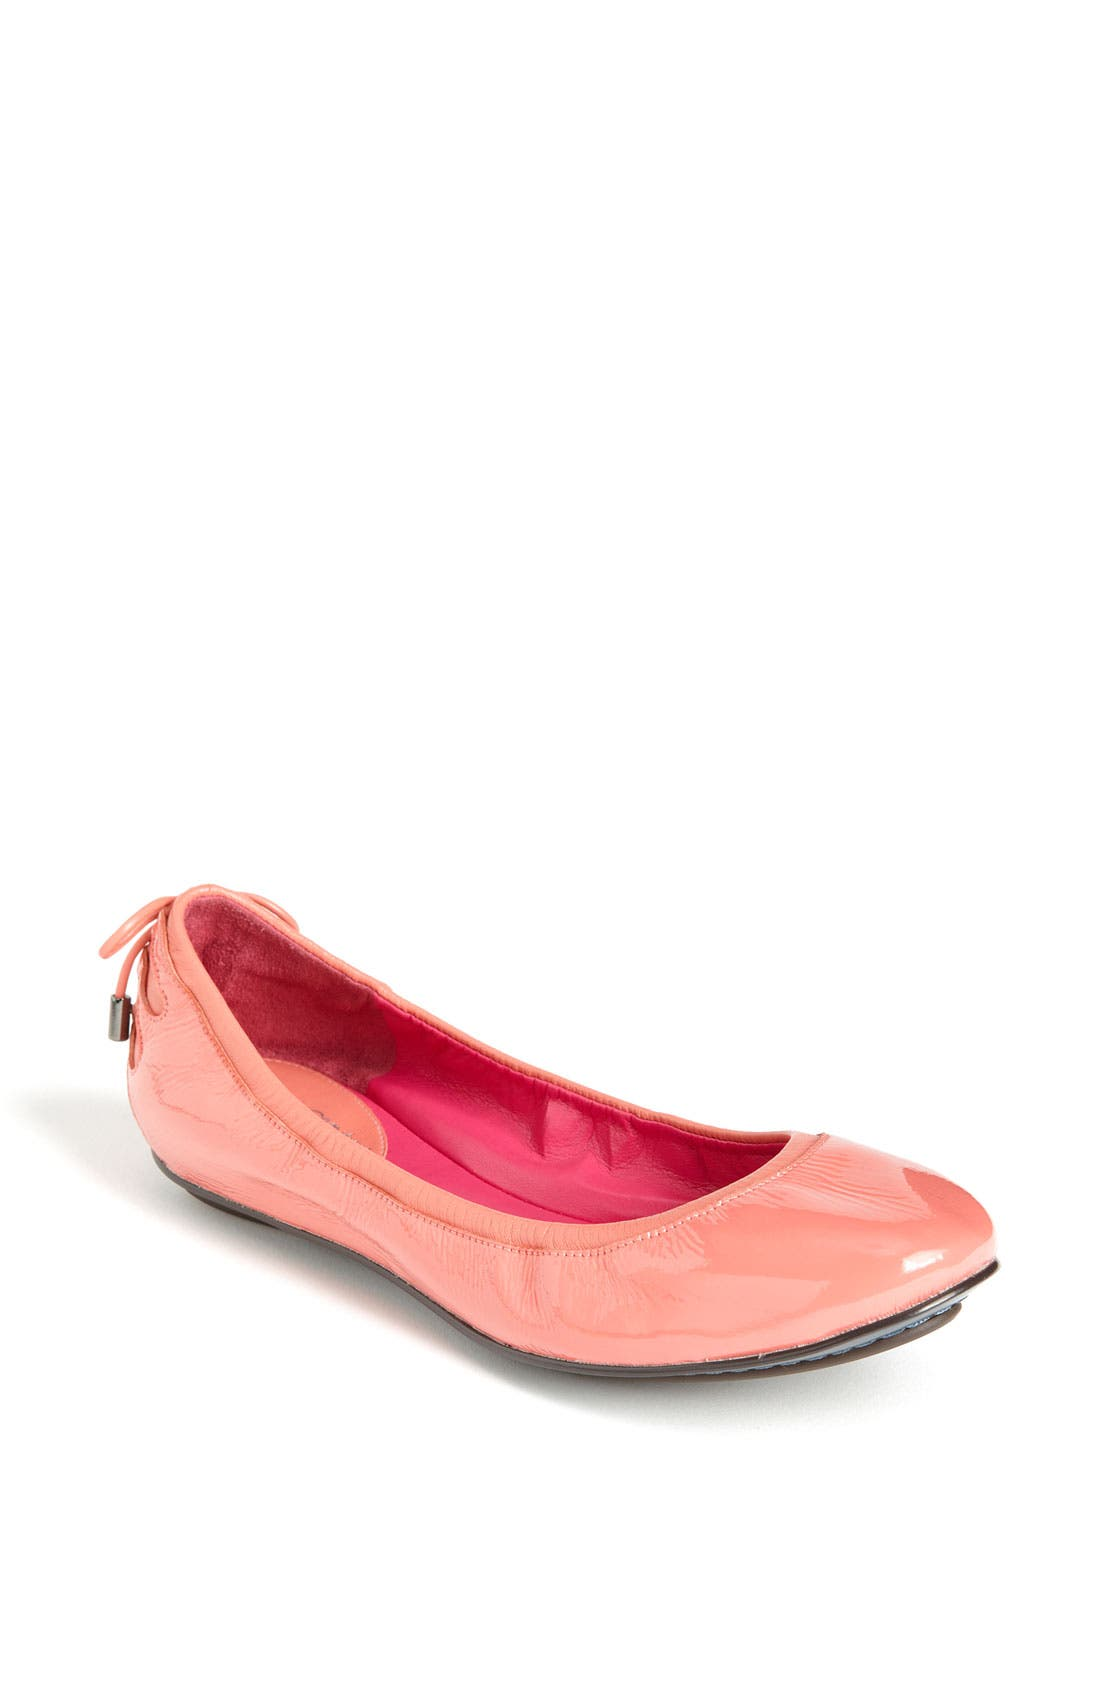 ,                             Maria Sharapova by Cole Haan 'Air Bacara' Flat,                             Main thumbnail 109, color,                             950